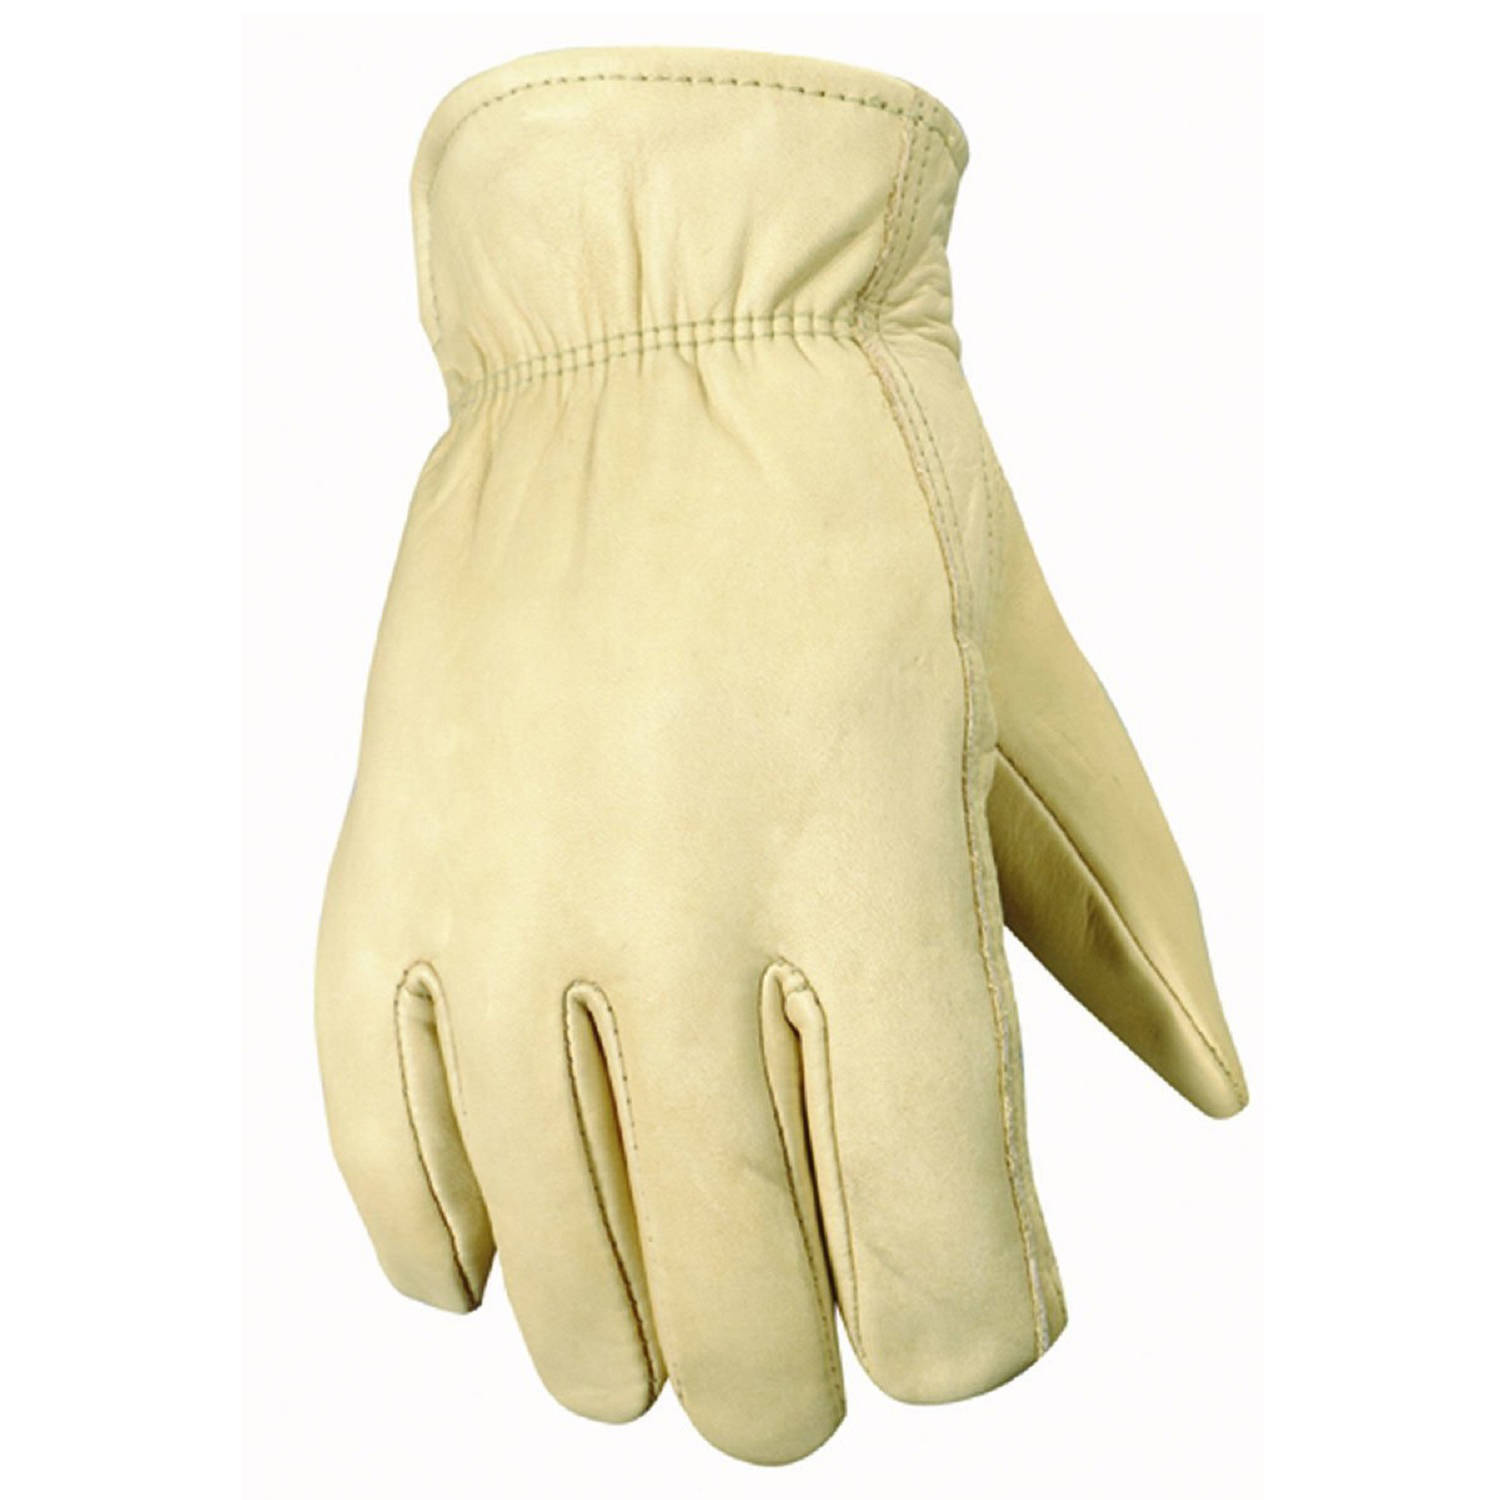 Wells Lamont Thinsulate Lined Leather Cowhide Work Gloves